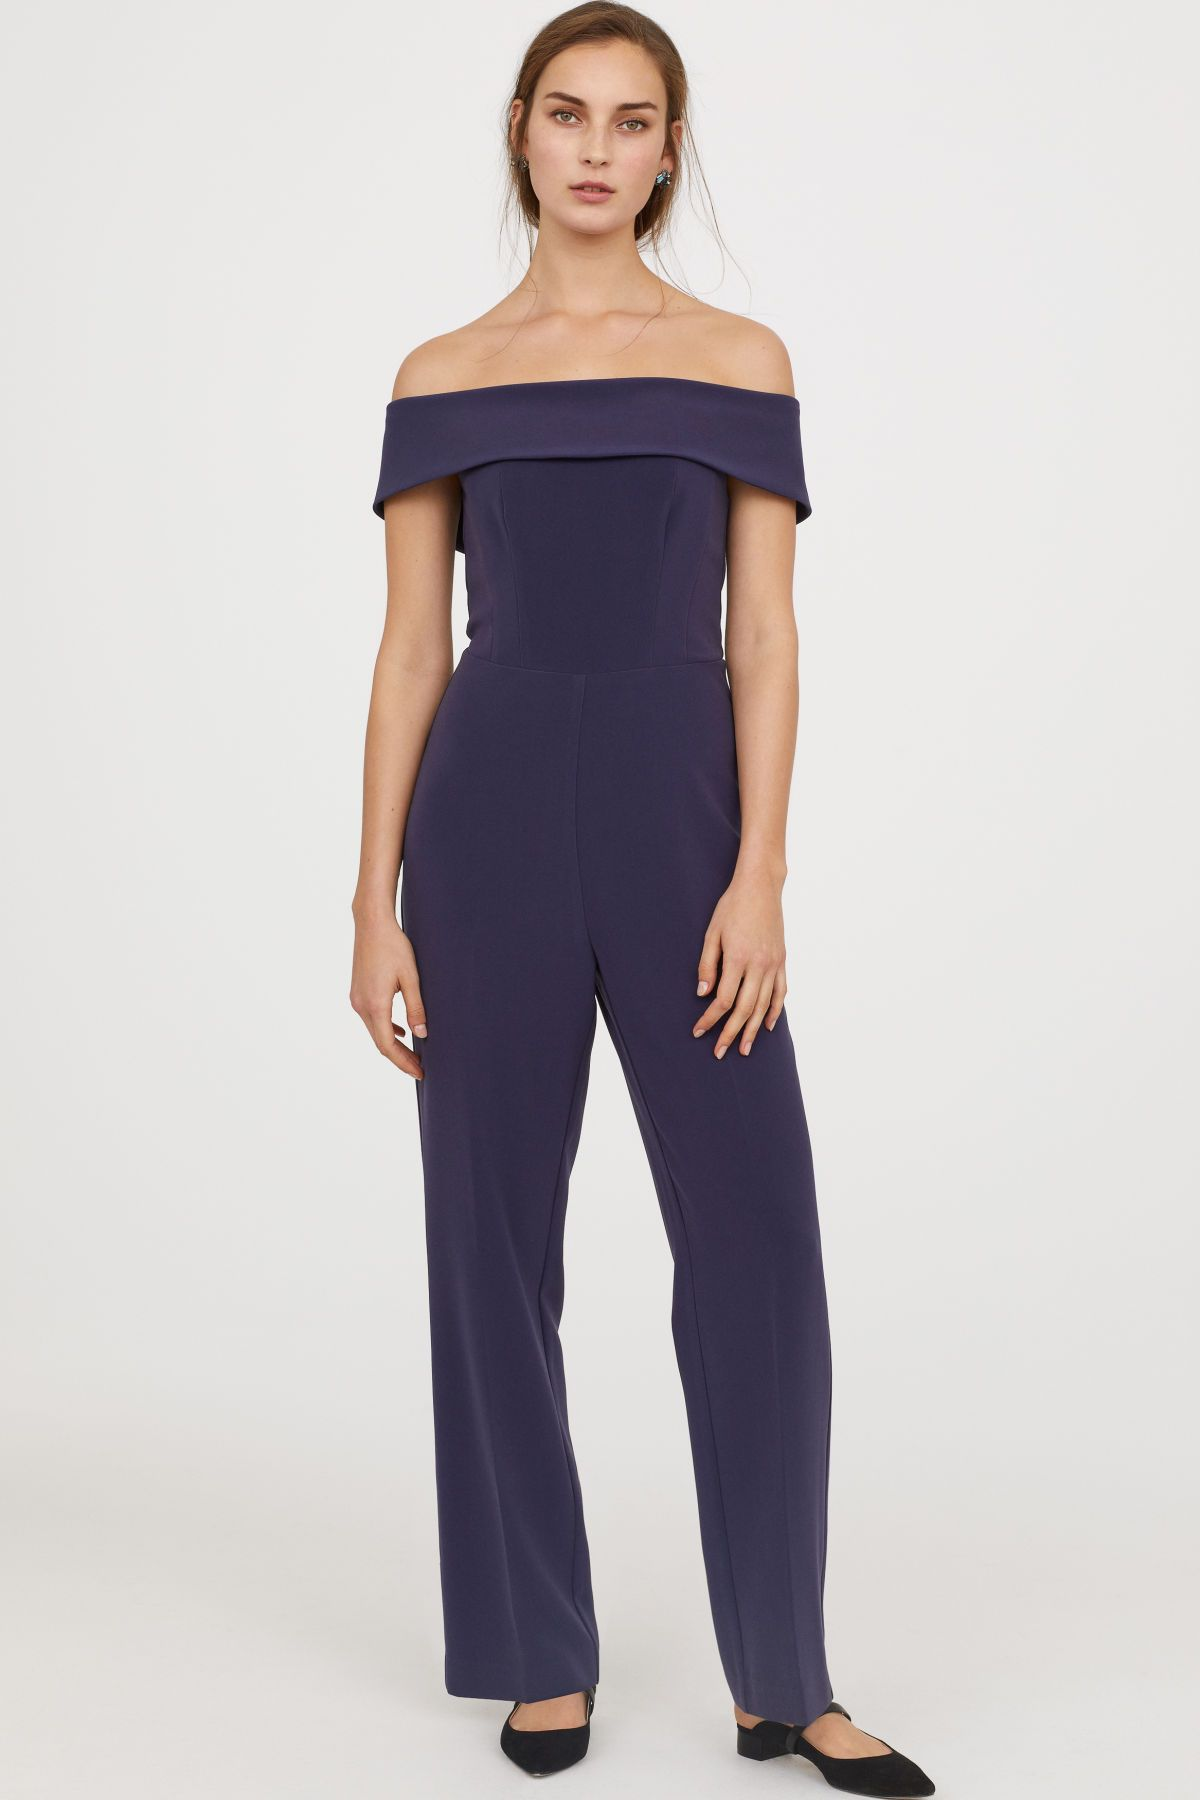 1fb01fa948f0 Blue Jumpsuits, Jumpsuits For Women, Fancy Earrings, One Piece, Always A  Bridesmaid